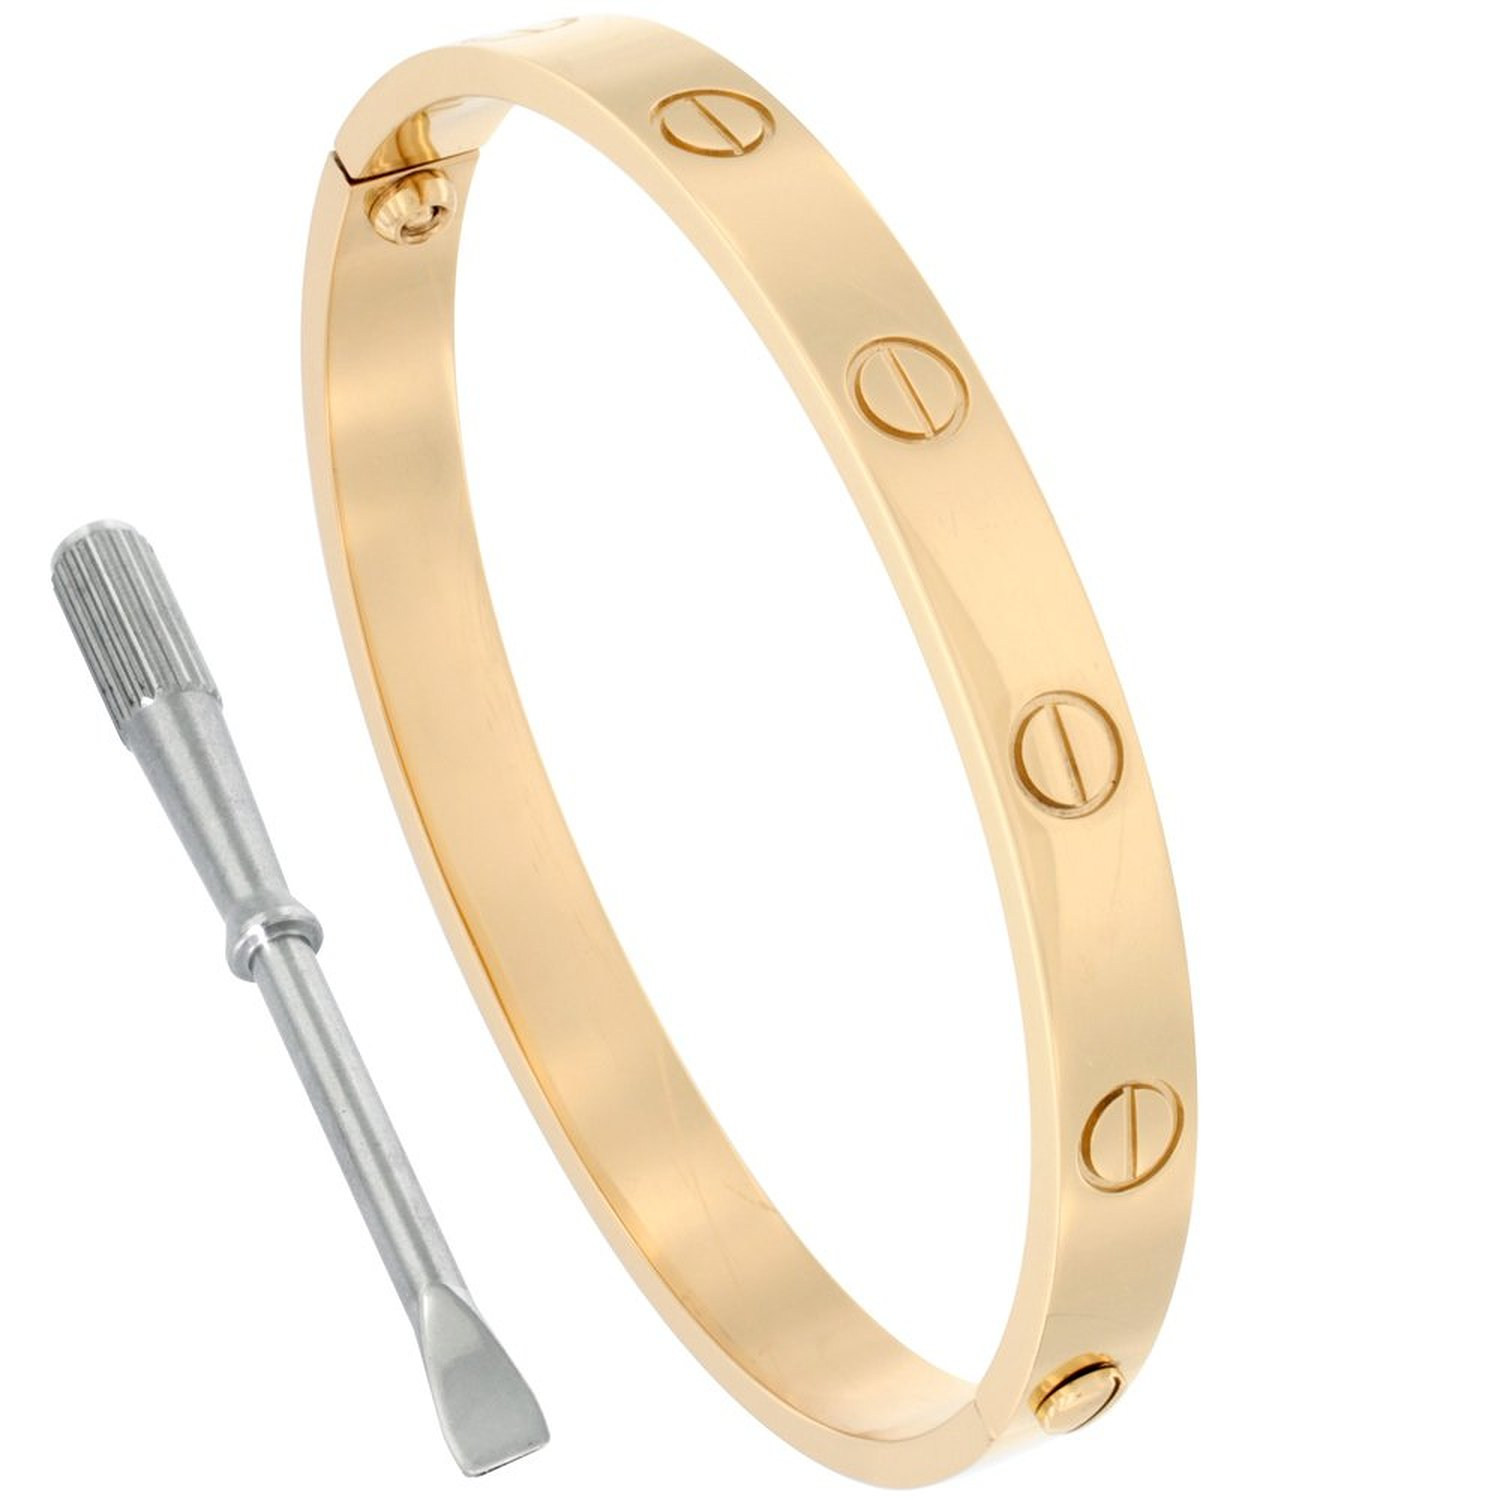 Amazon.com: Stainless Steel Screw Head Bangle Bracelet for Women Oval Gold tone 7mm wide, fits 7 1/2 inch wrists: Jewelry